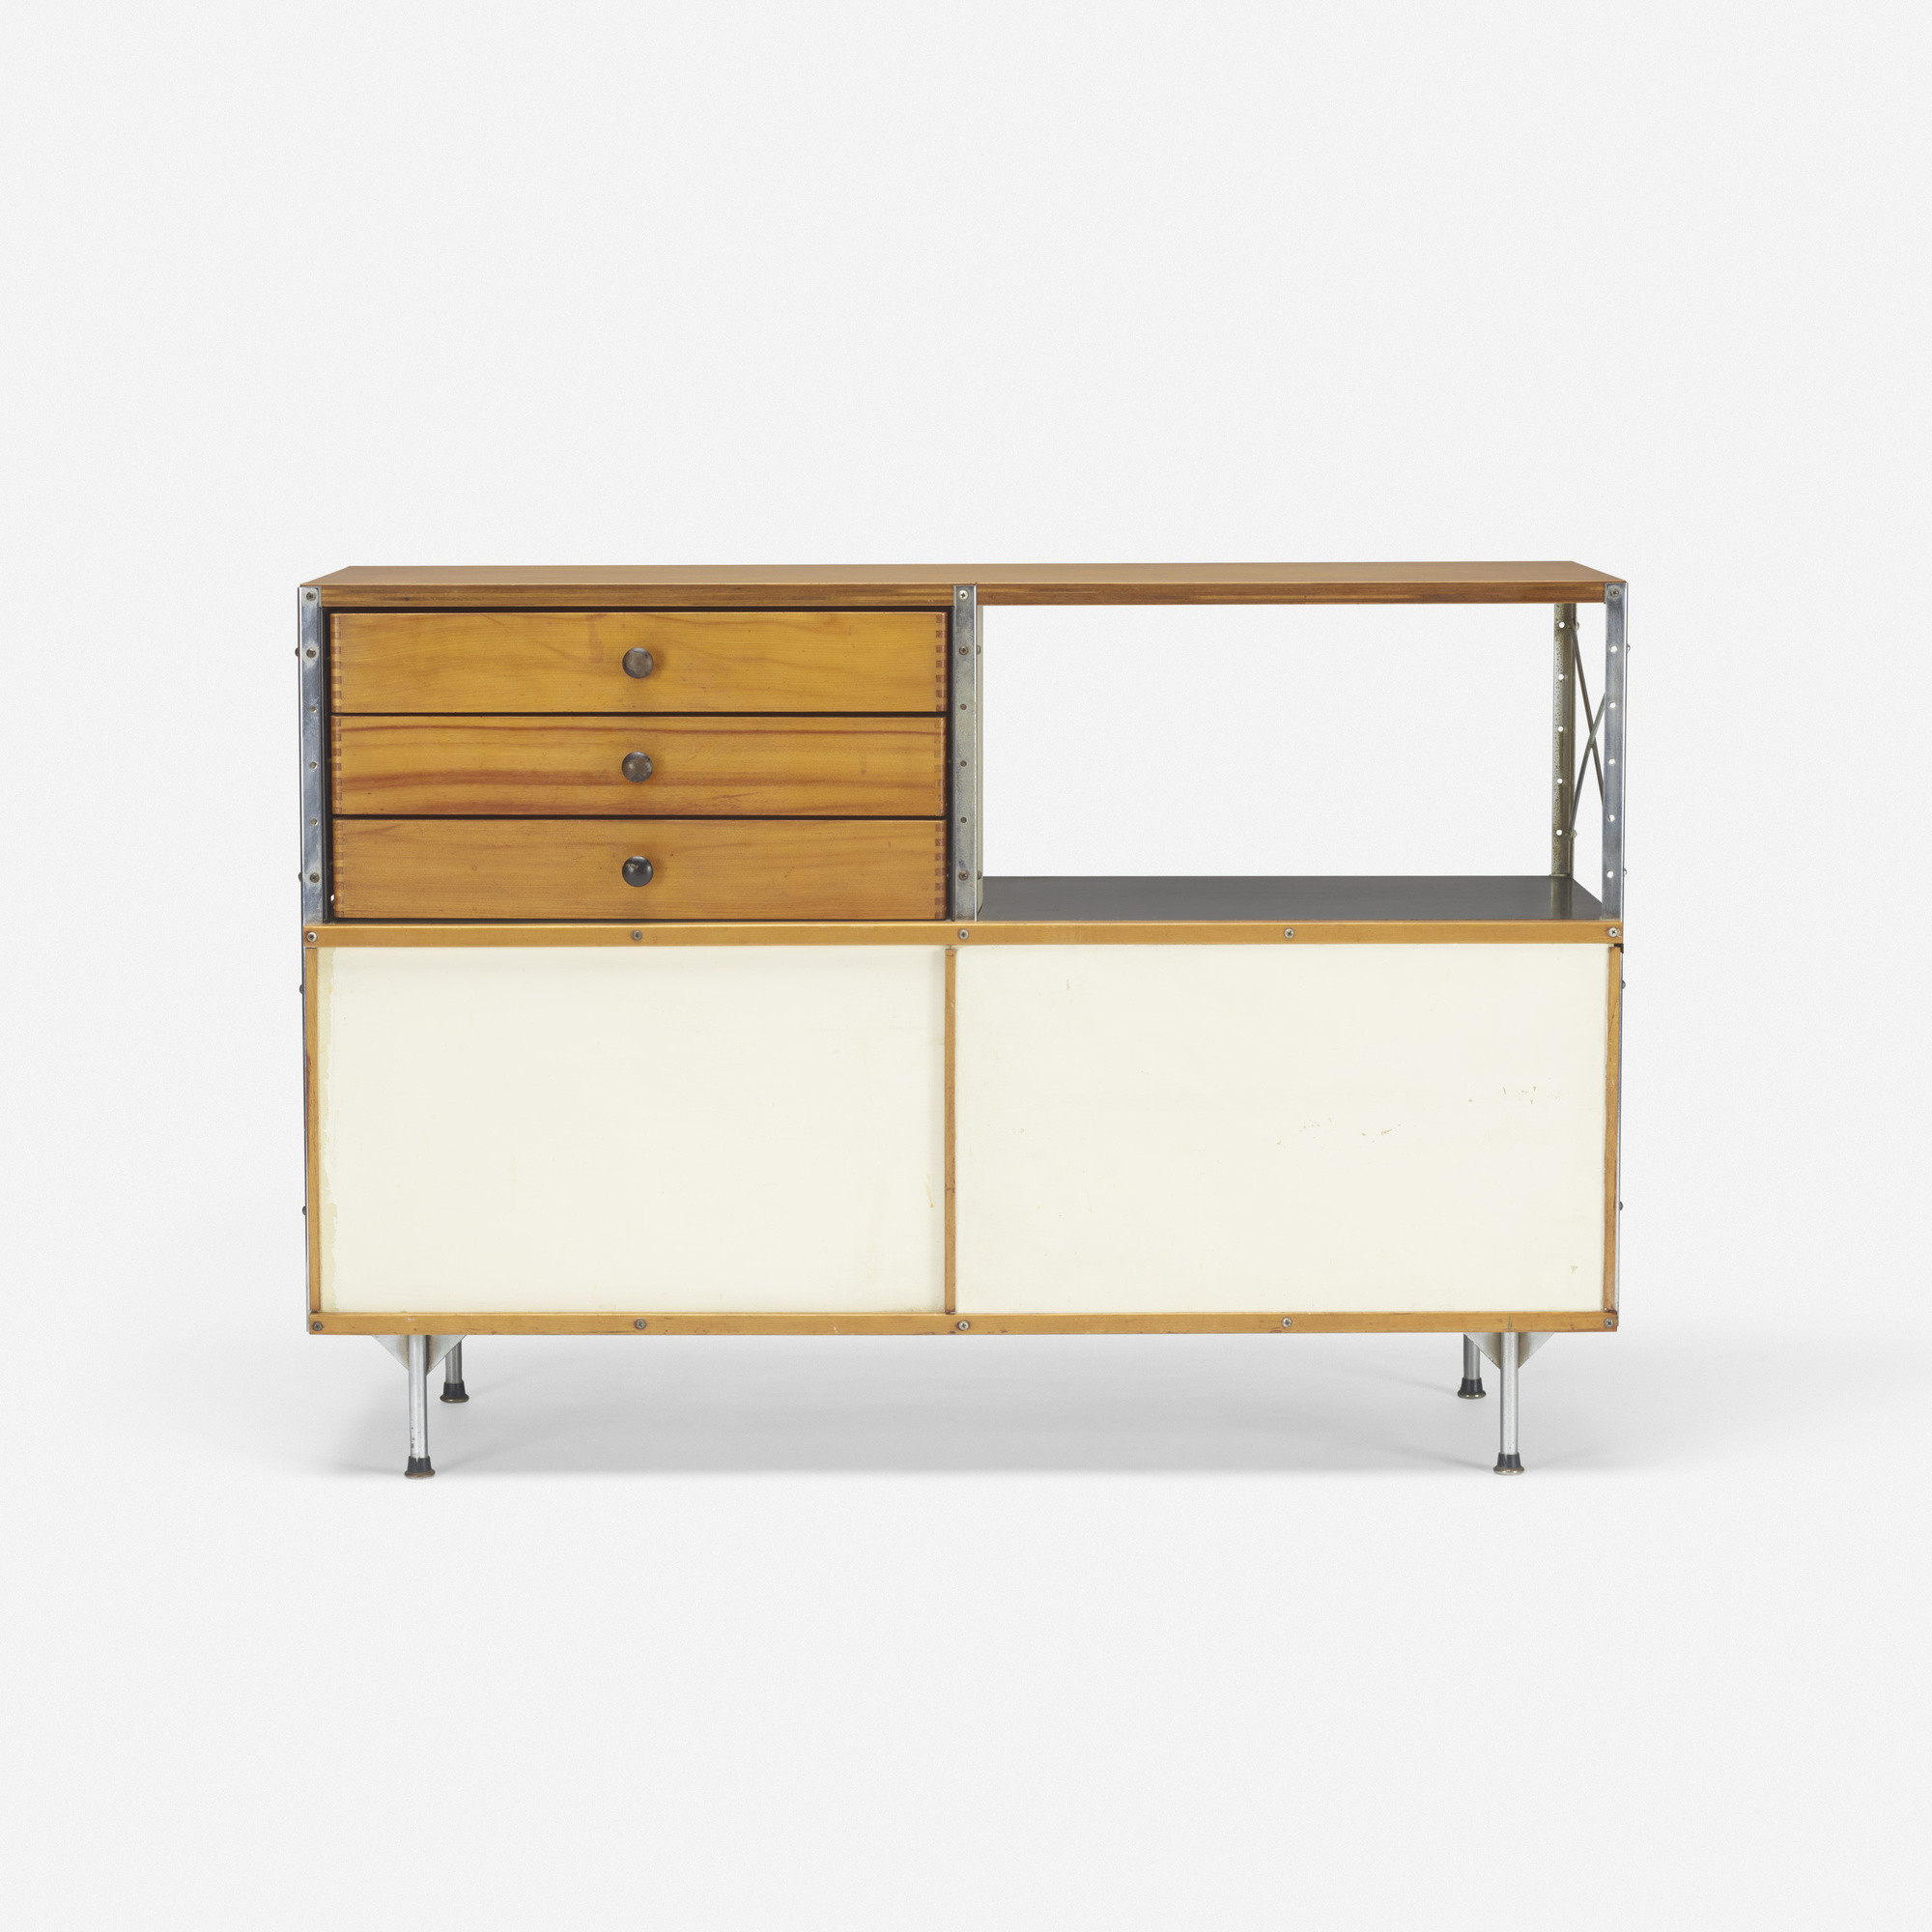 186: Charles and Ray Eames / ESU 200-N (2 of 3)